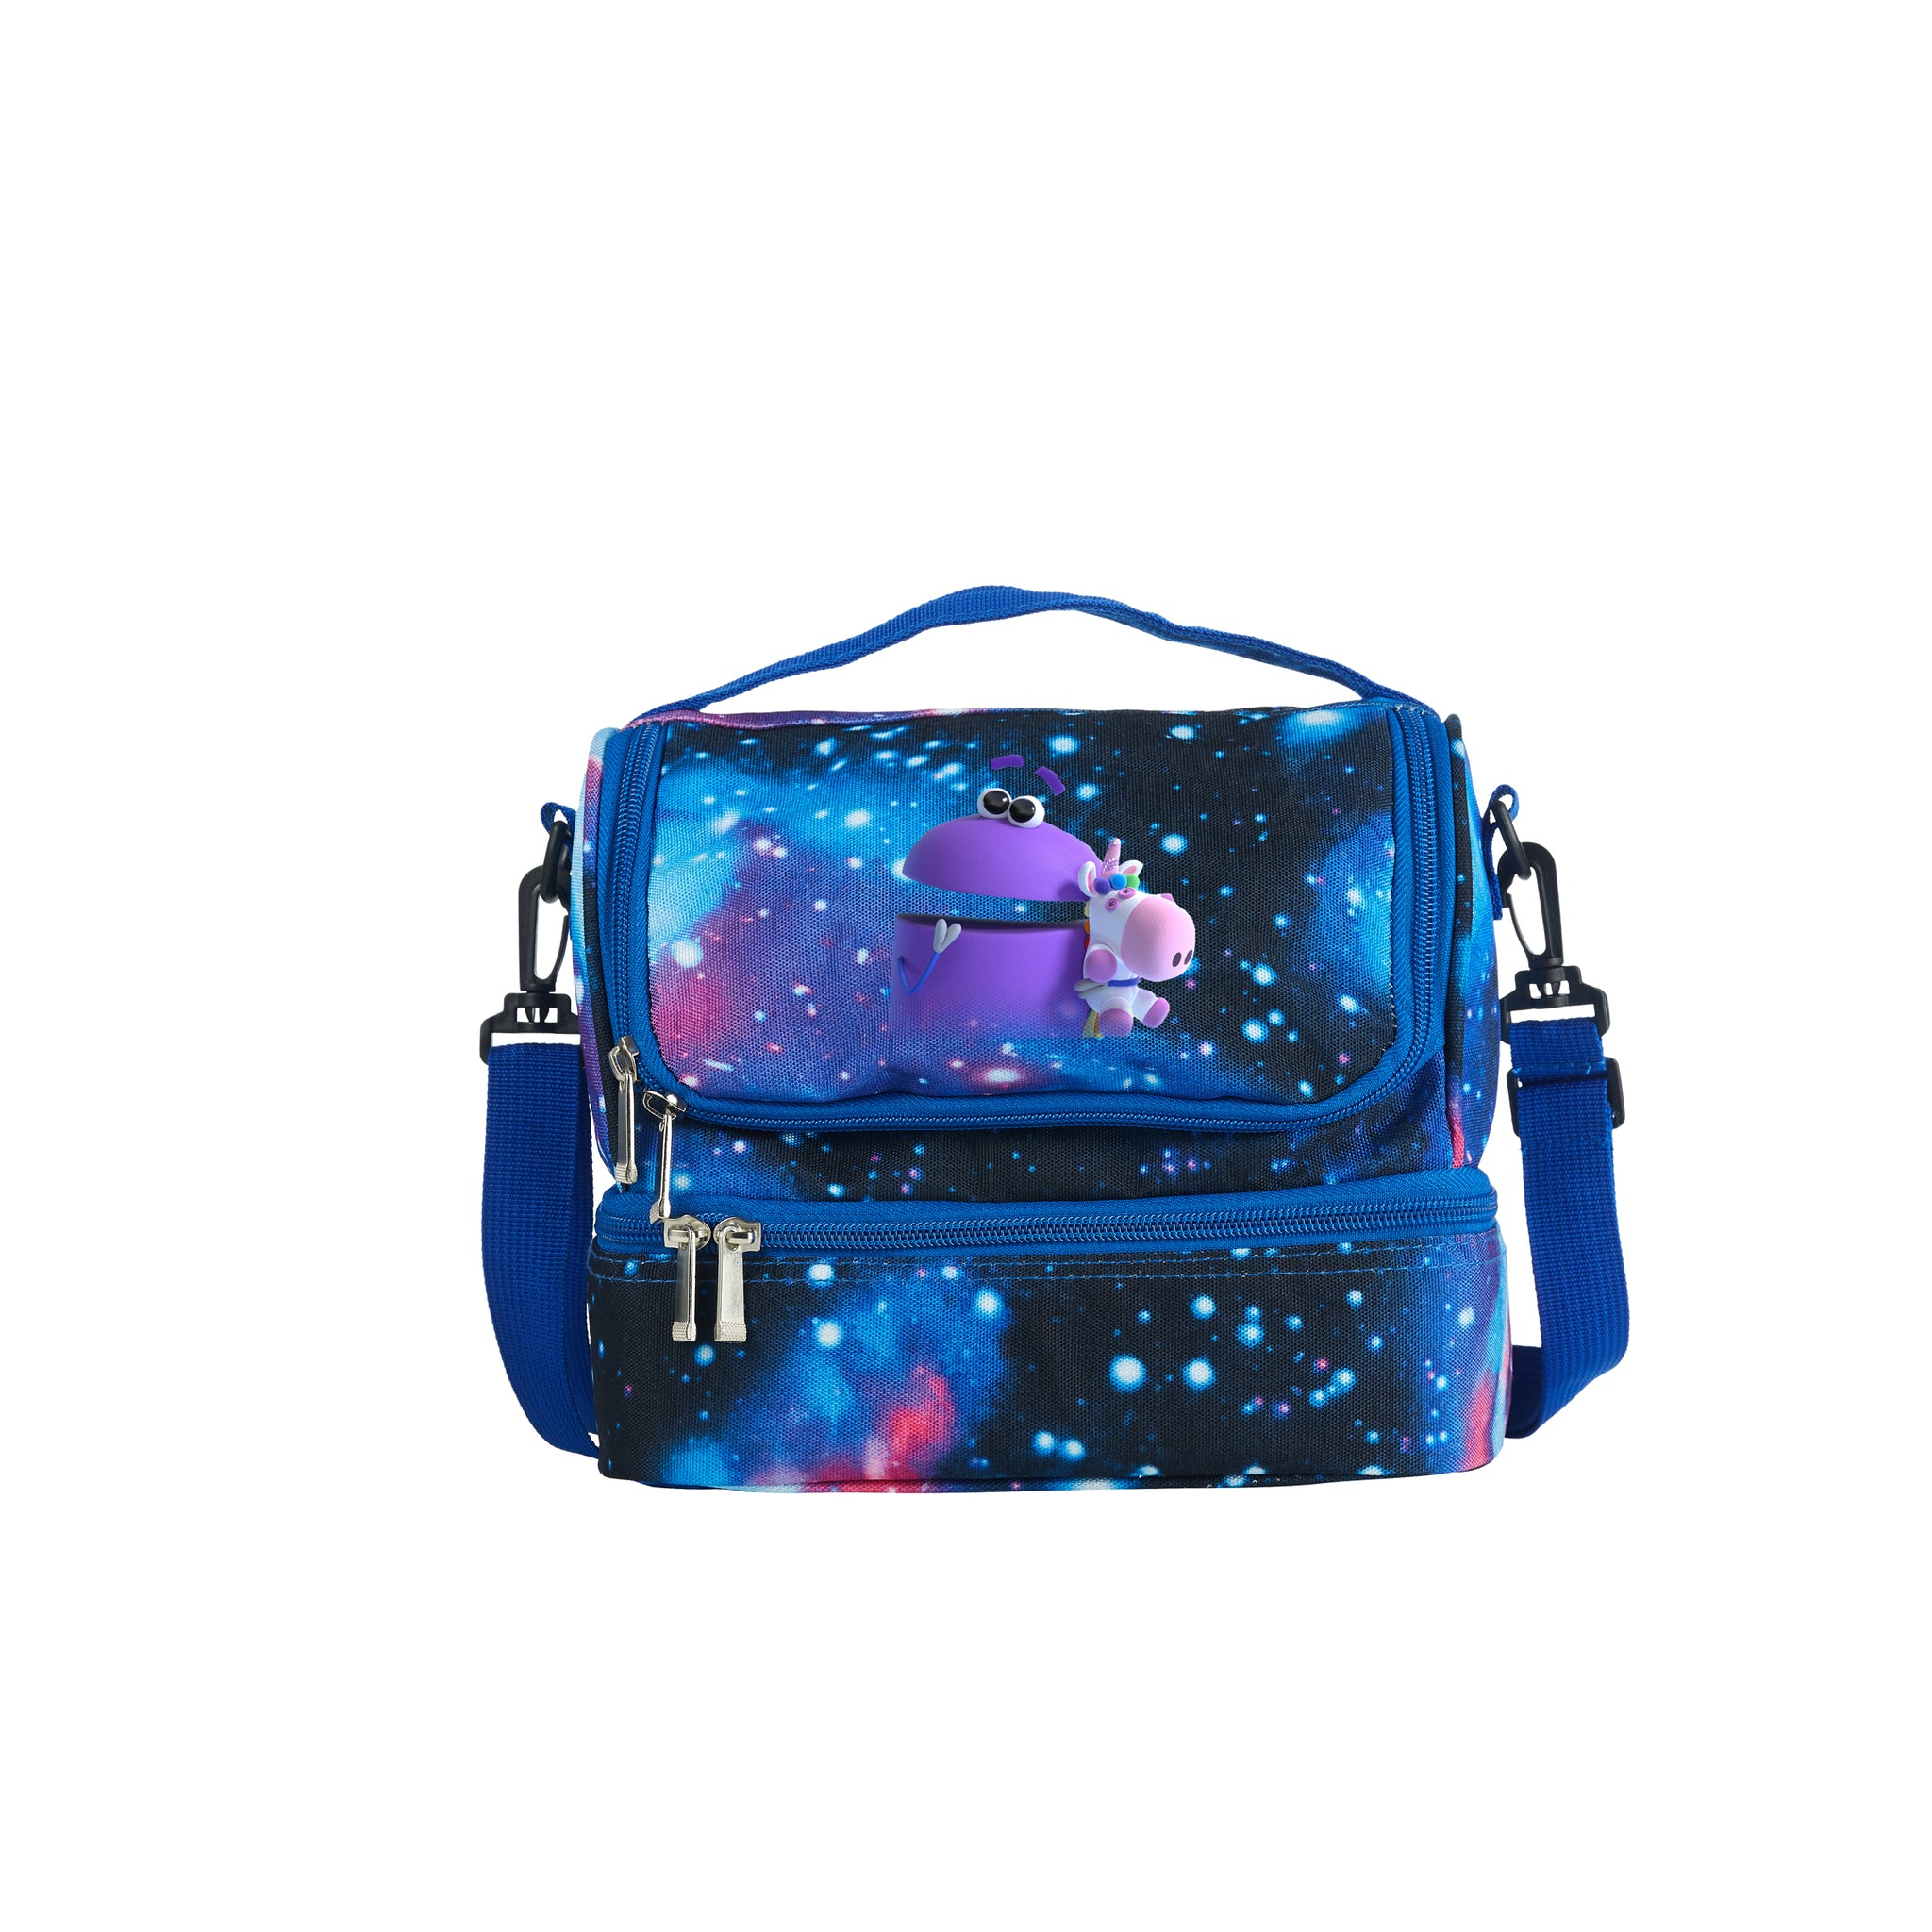 2019 New A Storybots Christmas Series Kids Two Compartment Galaxy Lunch Bag For School